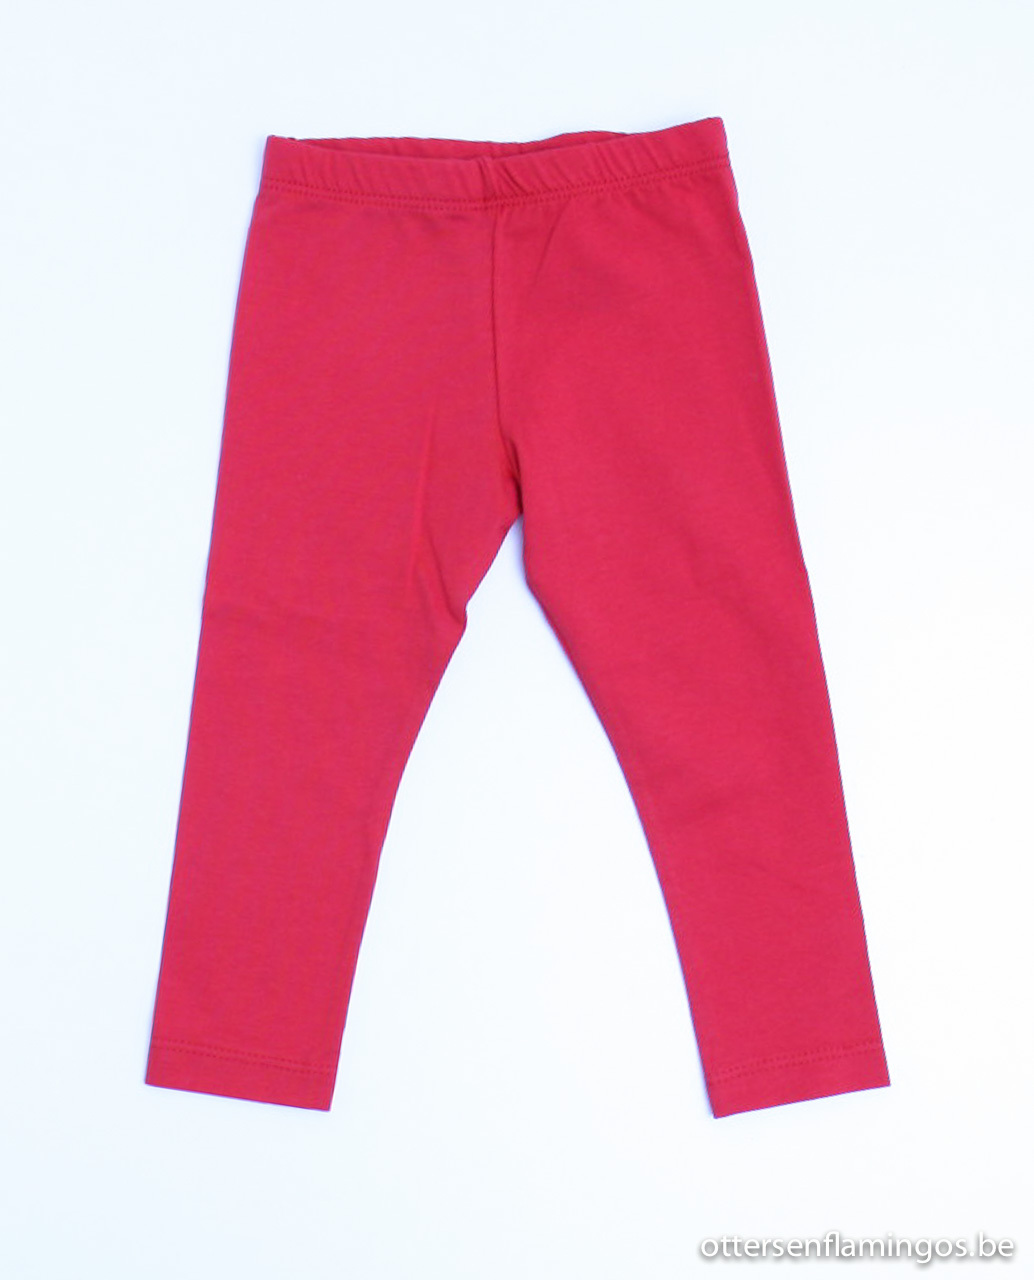 Rode legging, Ba*Ba - 74/80